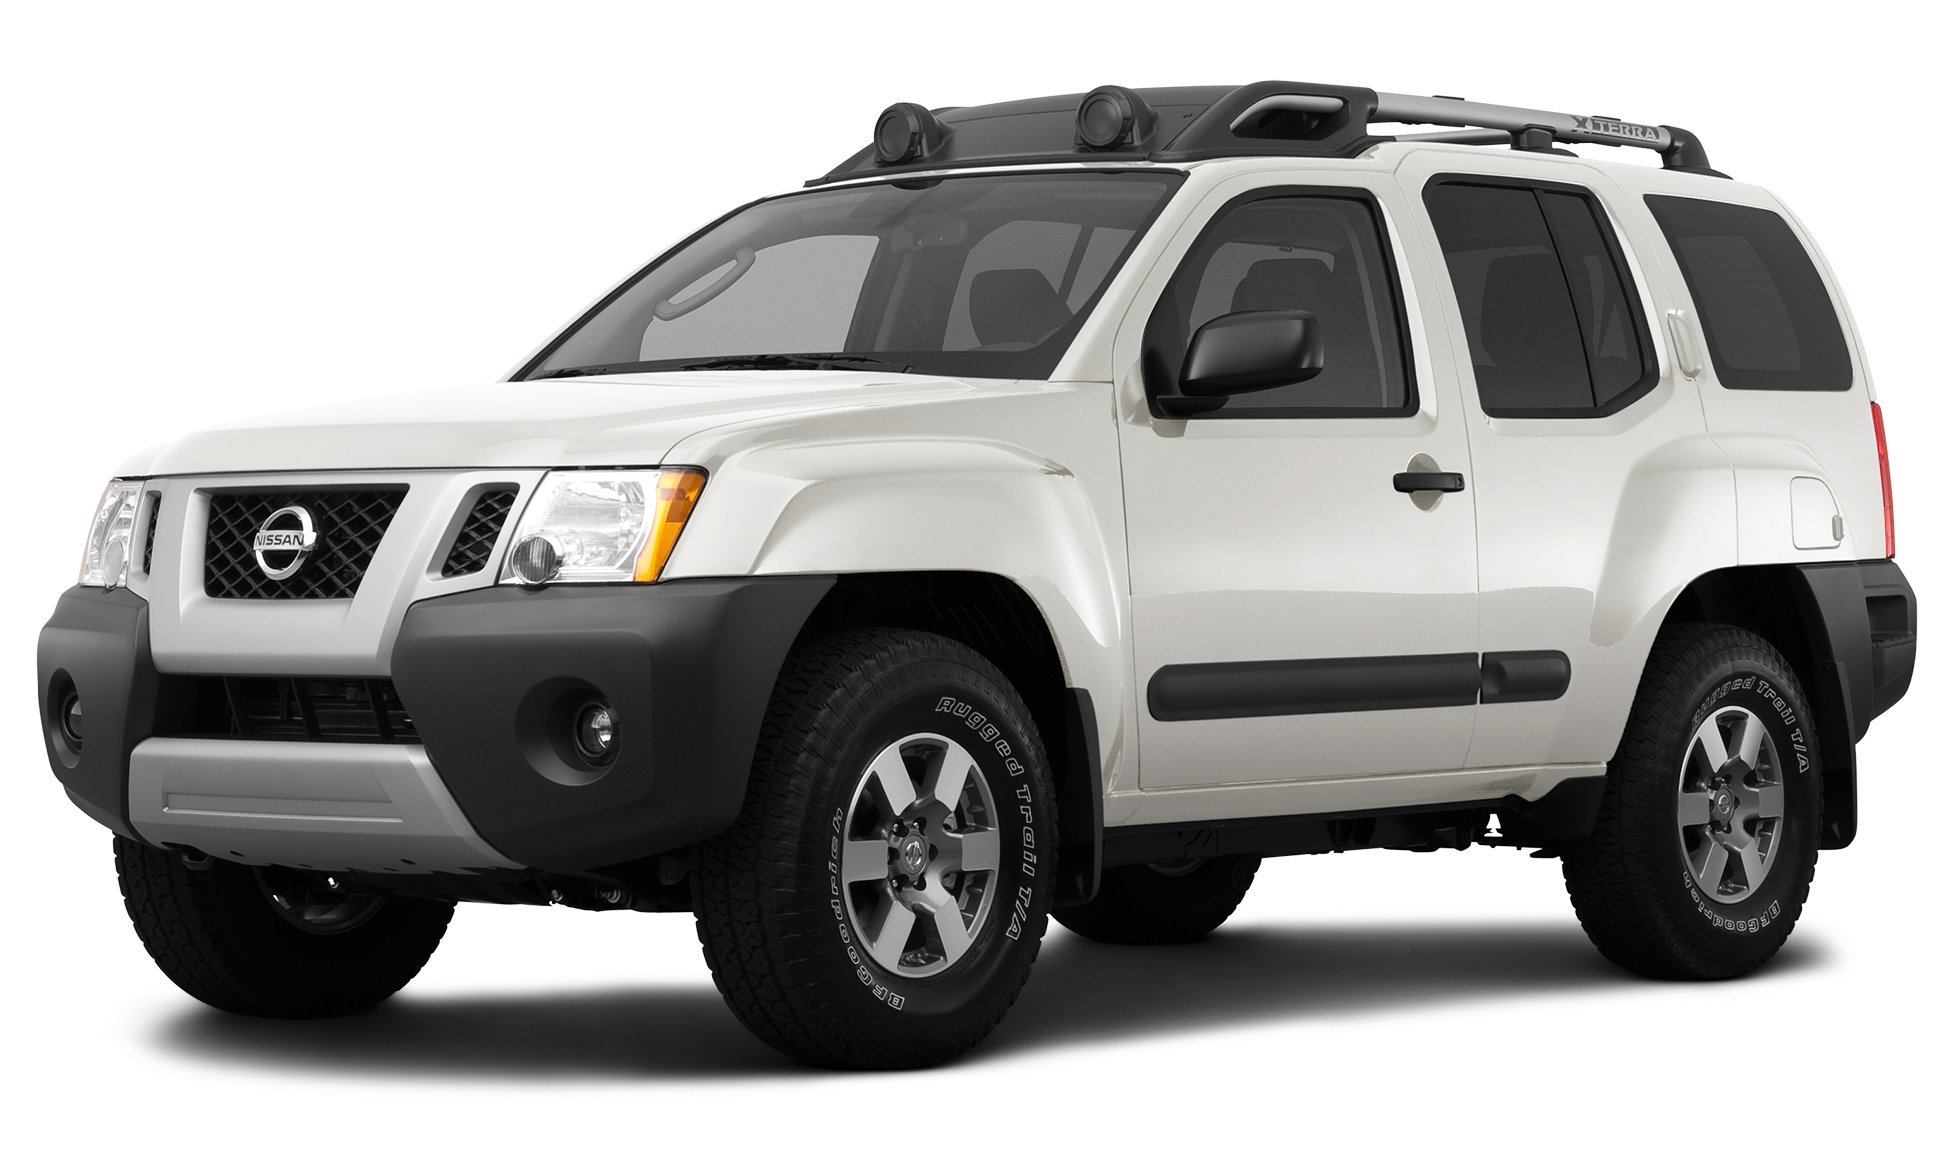 2012 nissan xterra reviews images and specs vehicles. Black Bedroom Furniture Sets. Home Design Ideas